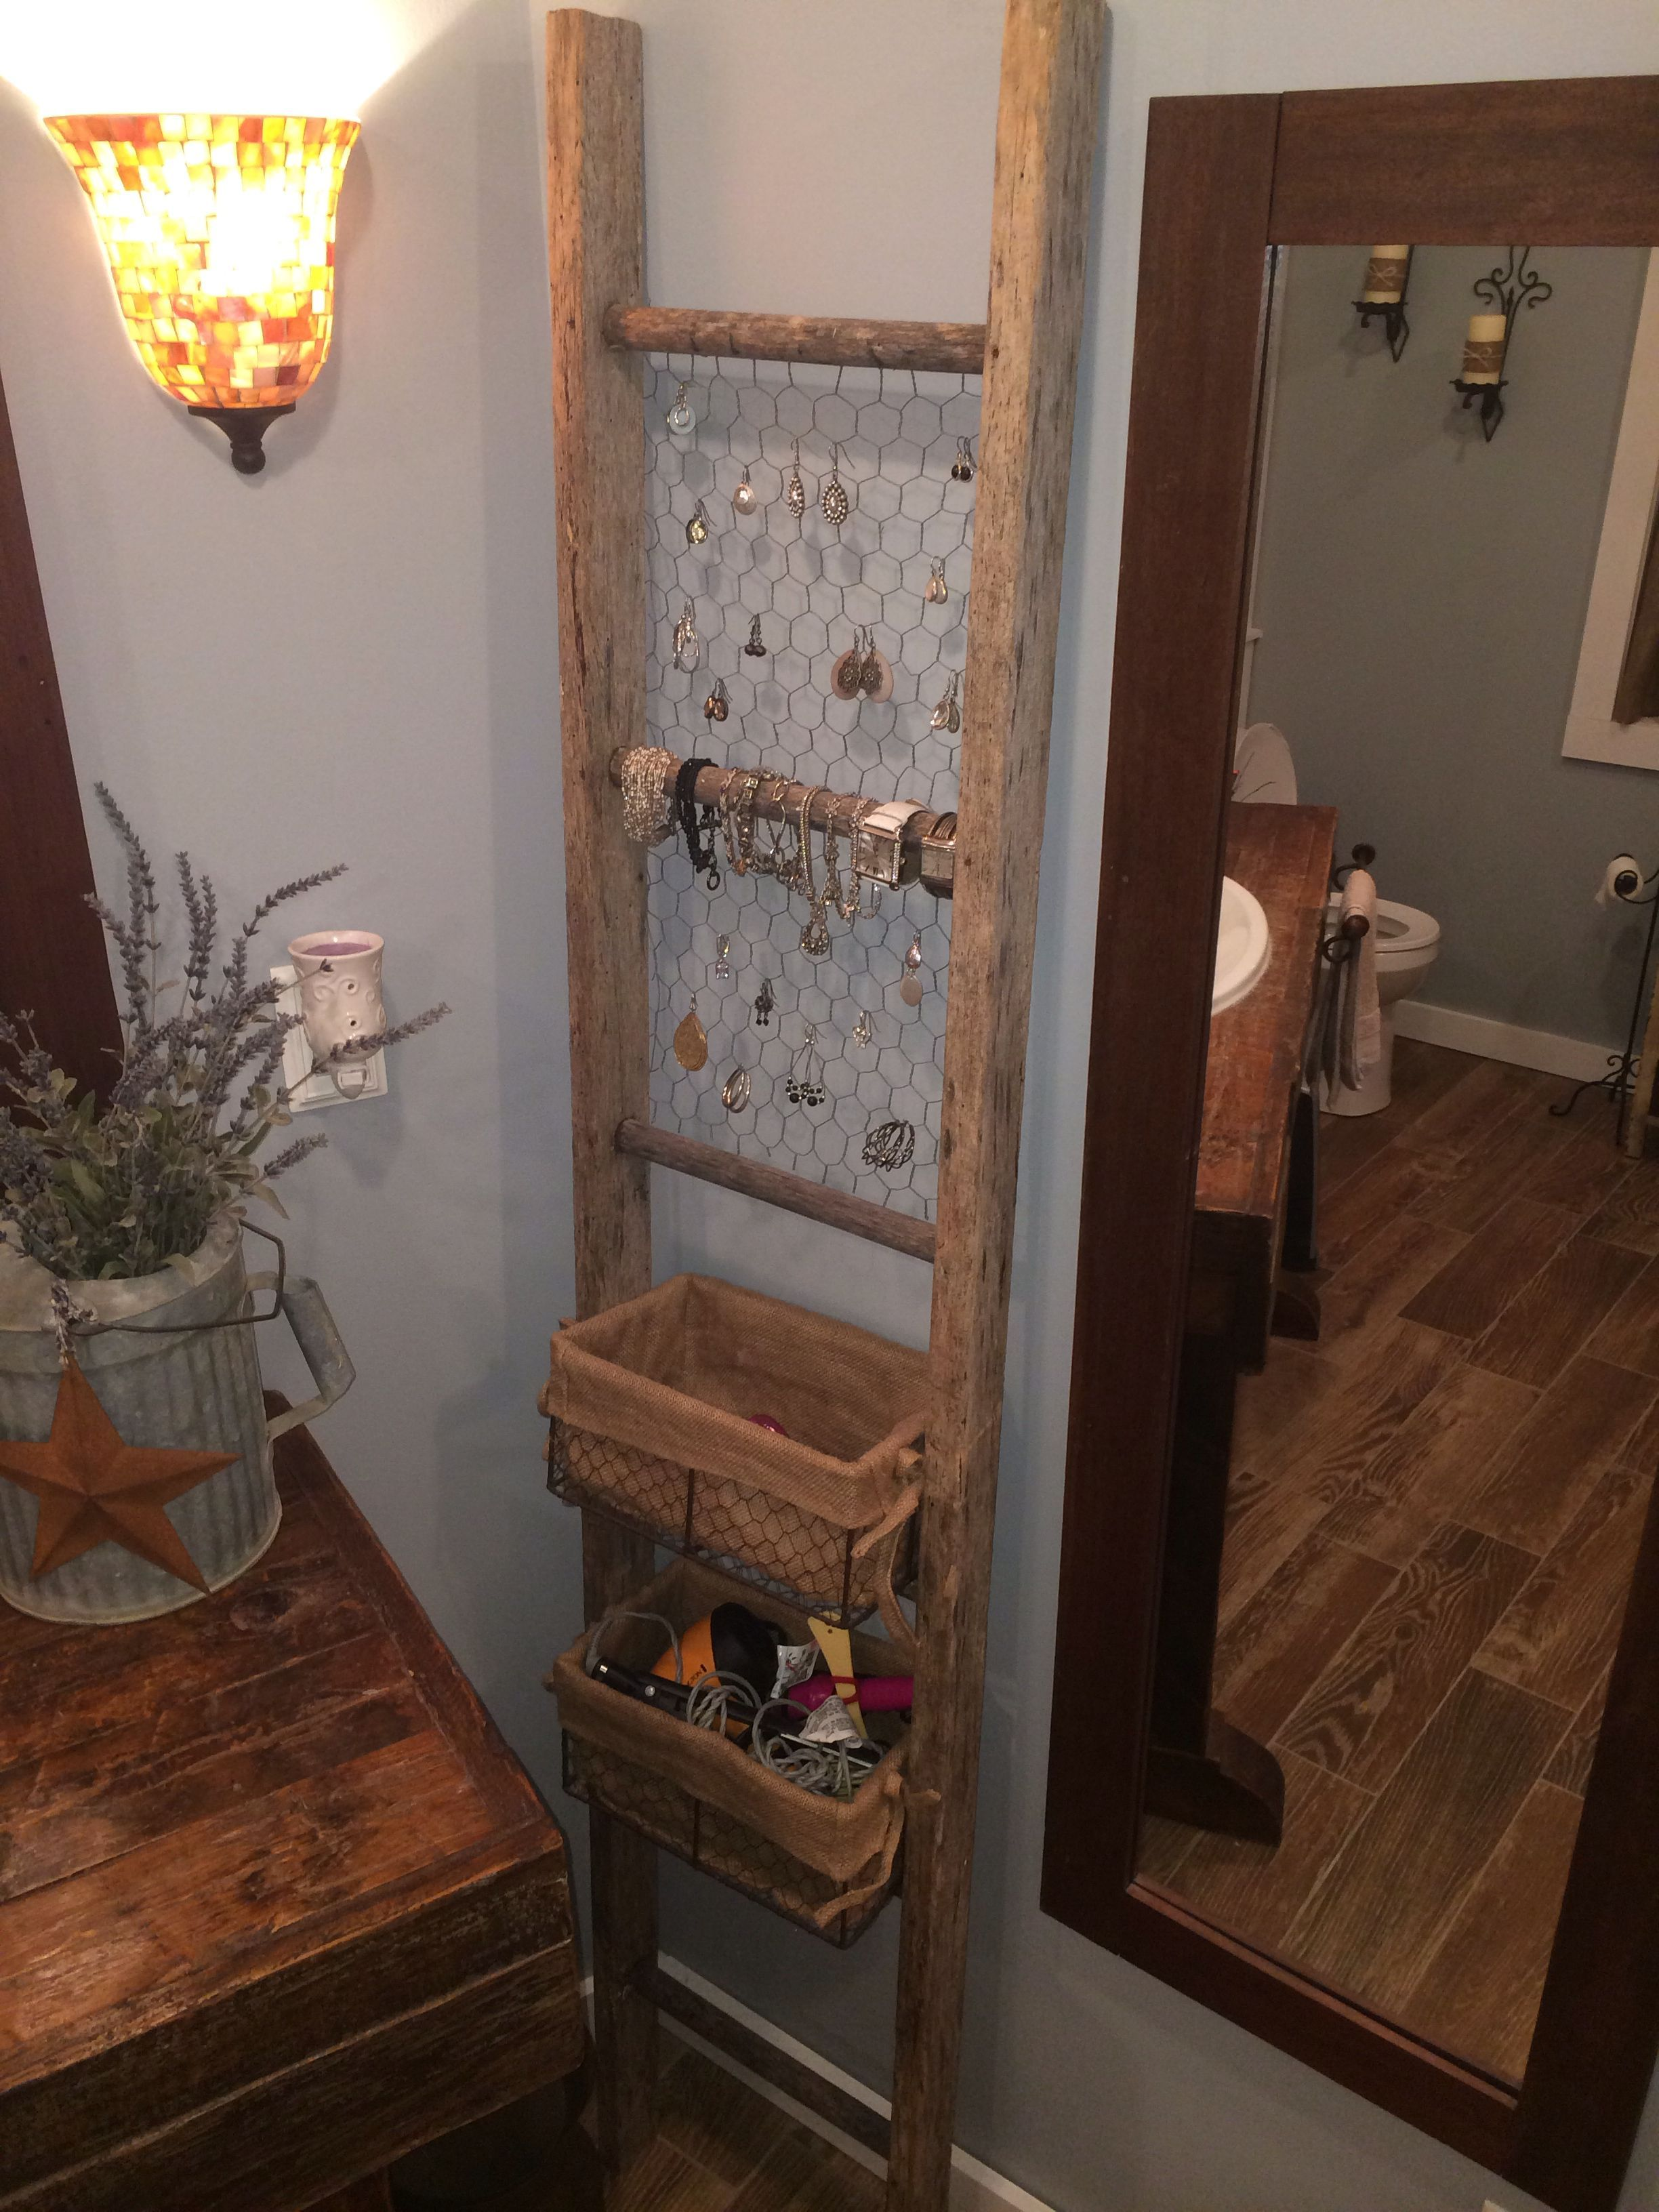 Old ladder used for bathroom organization. Could r